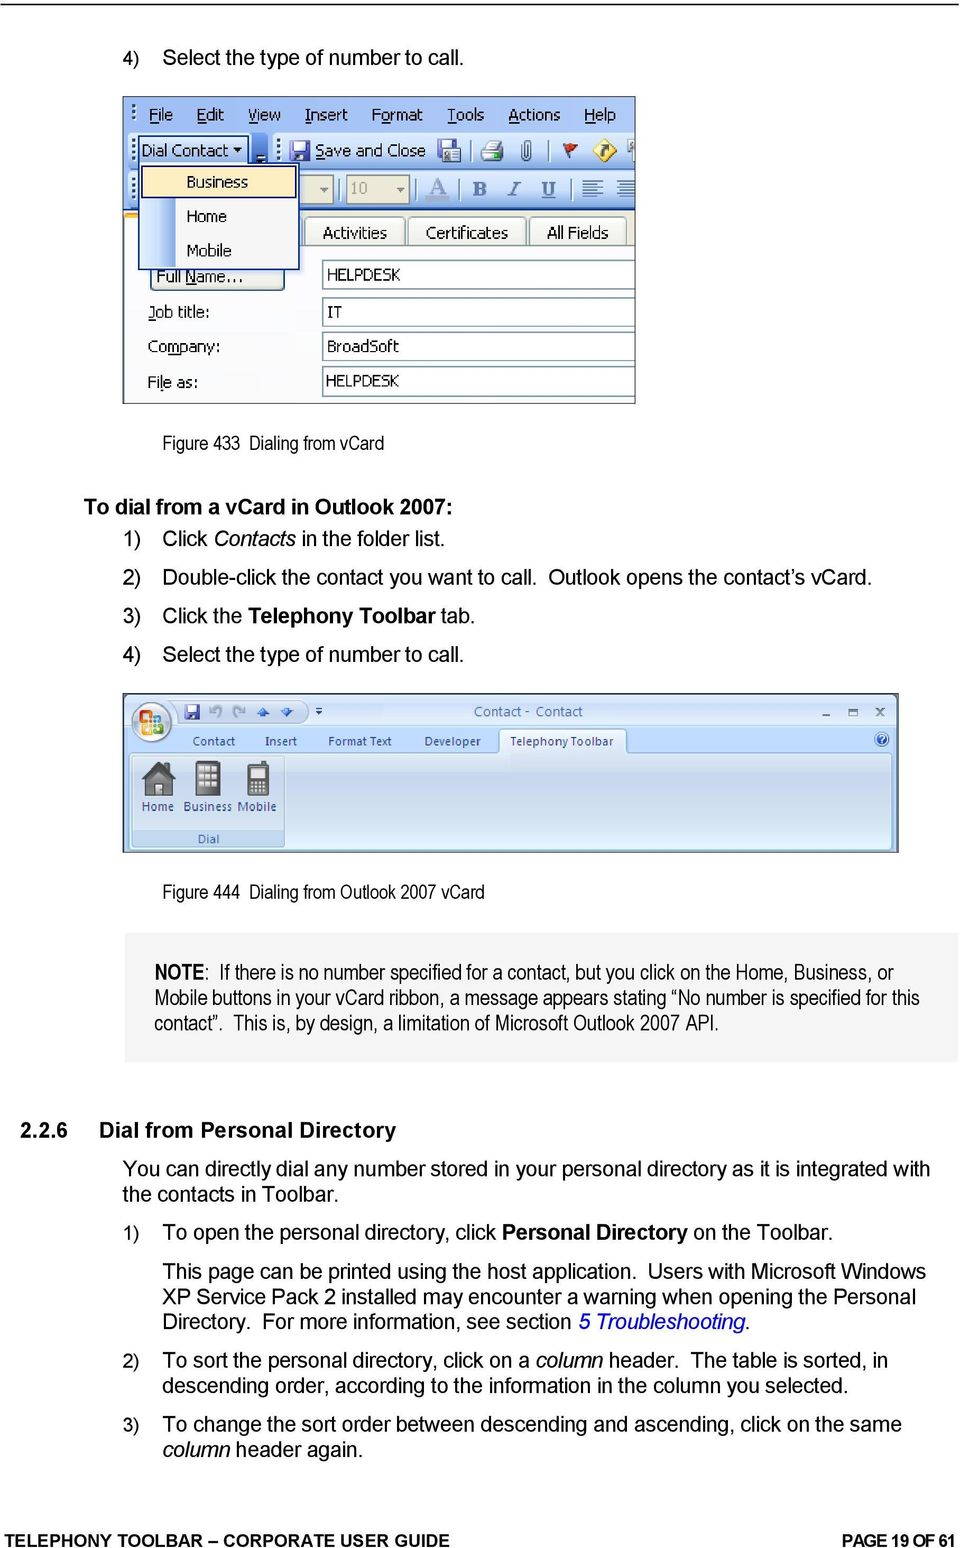 Figure 444 Dialing from Outlook 2007 vcard NOTE: If there is no number specified for a contact, but you click on the Home, Business, or Mobile buttons in your vcard ribbon, a message appears stating